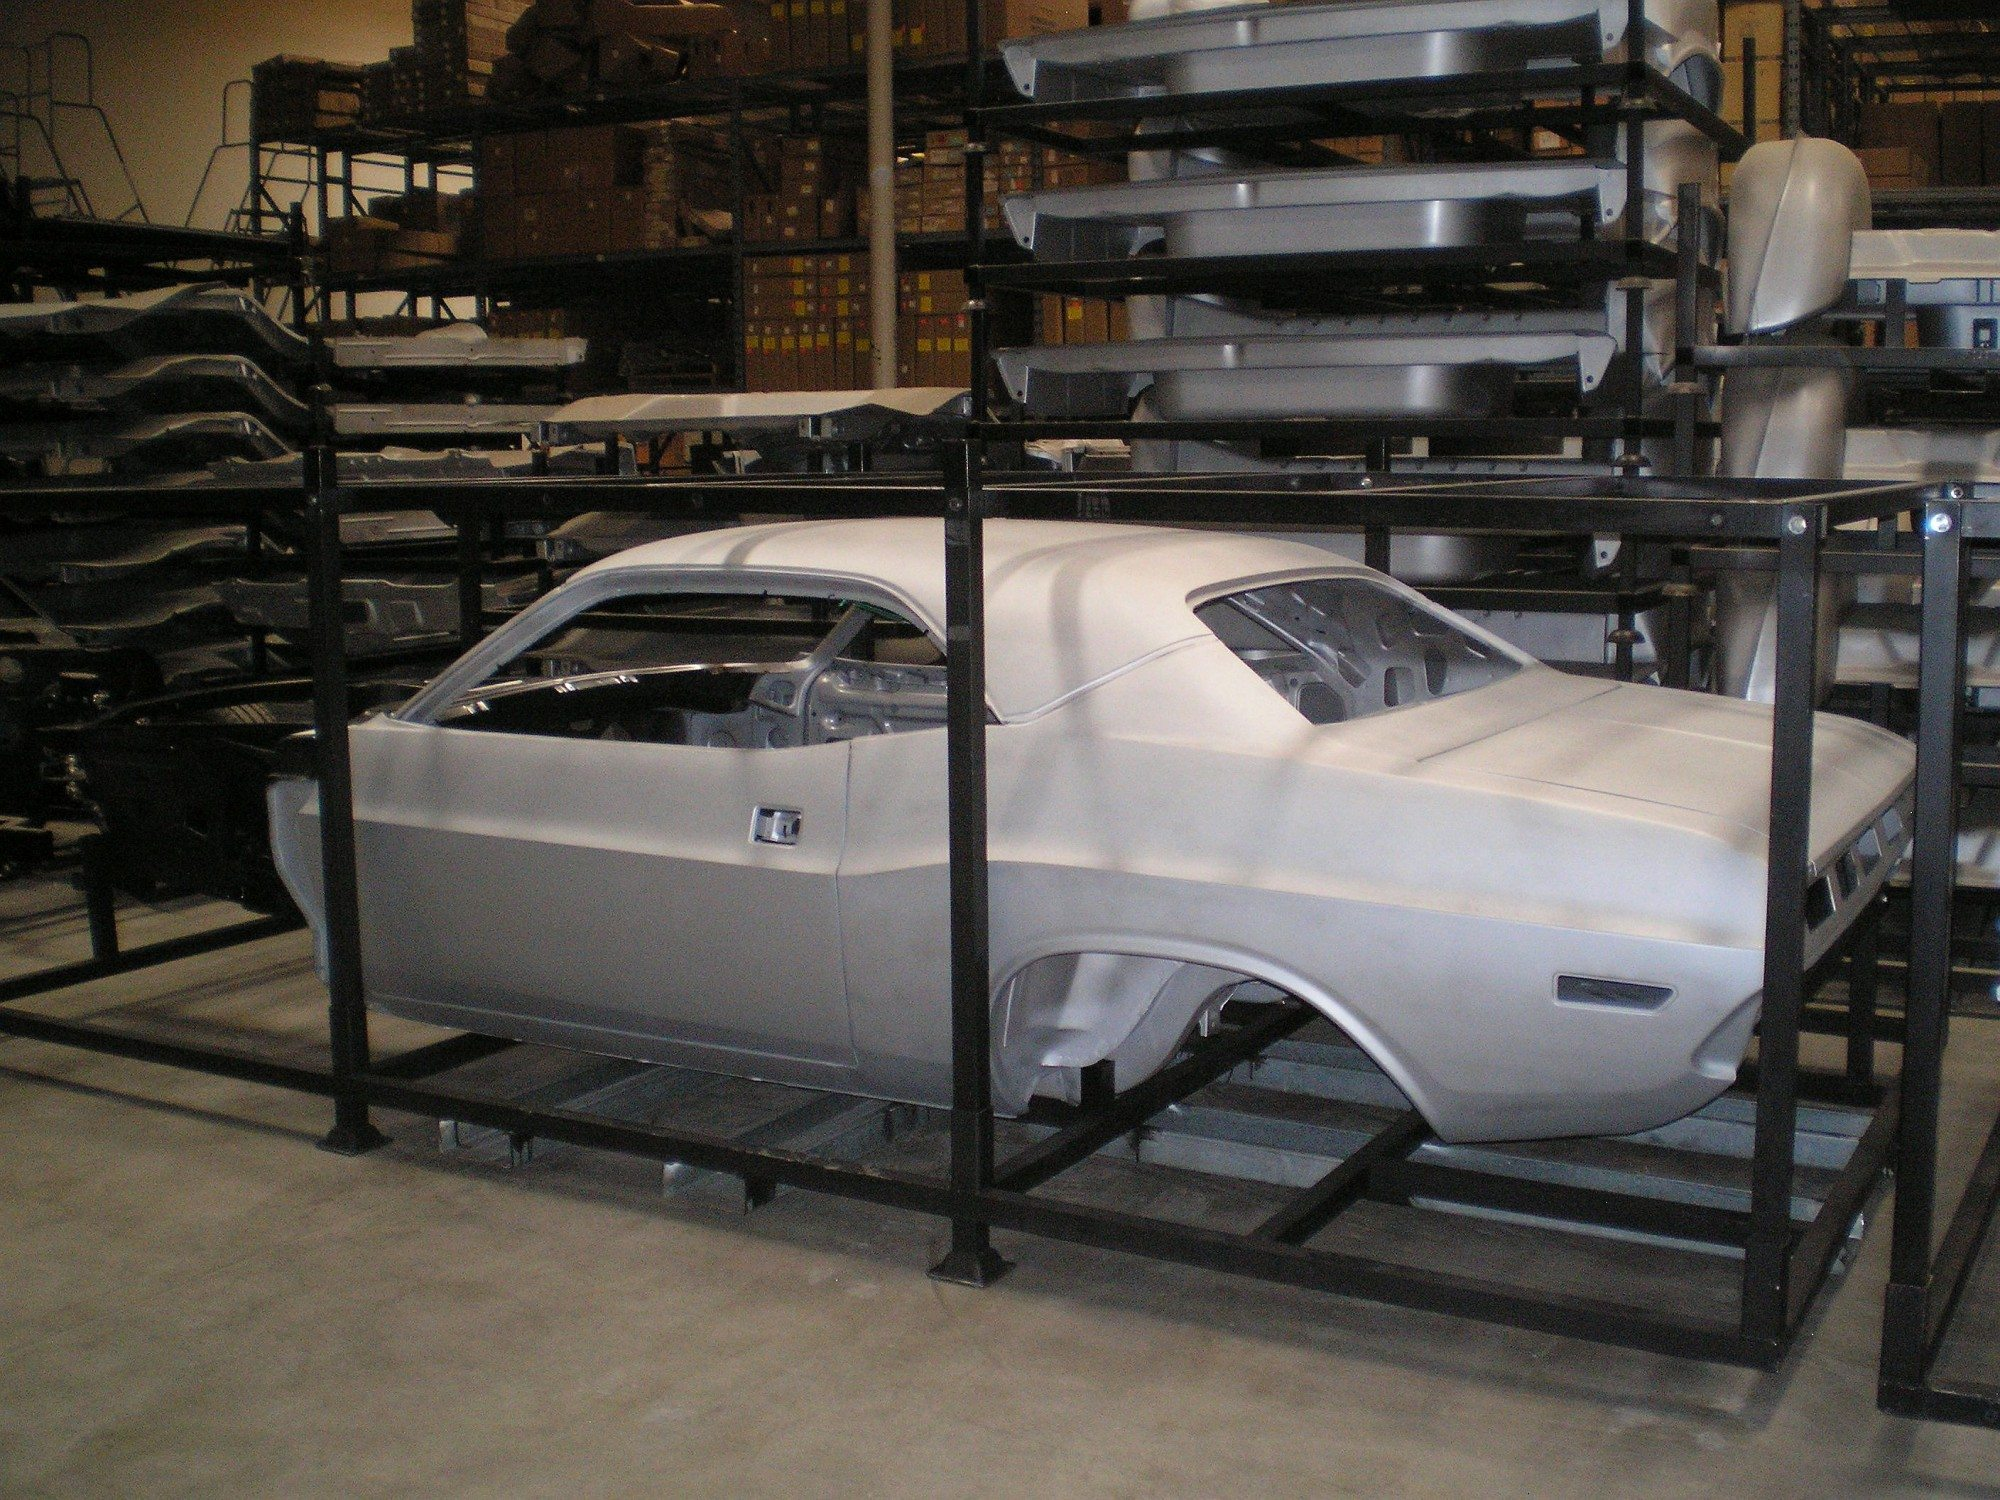 Classic Dodge Challenger >> 1970 Dodge Challenger Classic Car Replacement Bodies